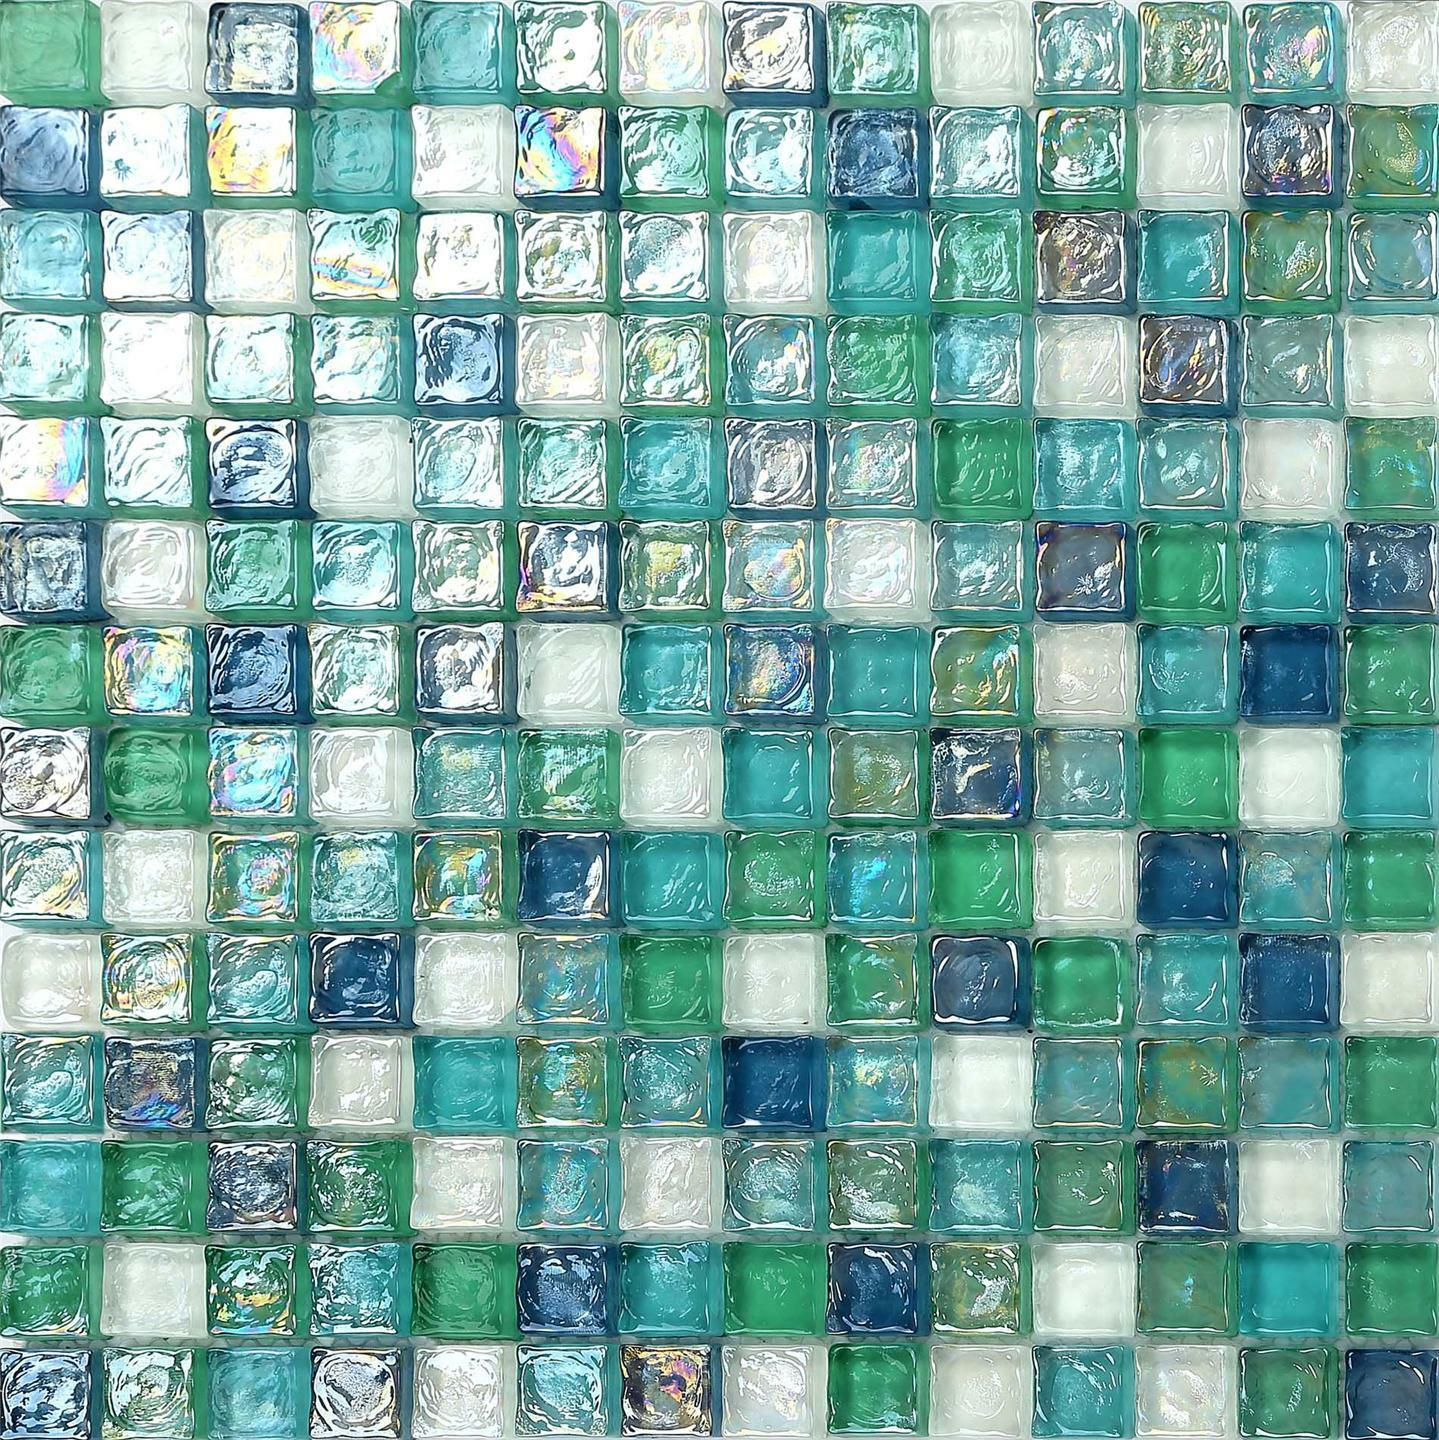 1 SQ M Blau Grün Aqua Hammerot Glass Shower Bathroom Mosaic Wall Tiles 0052